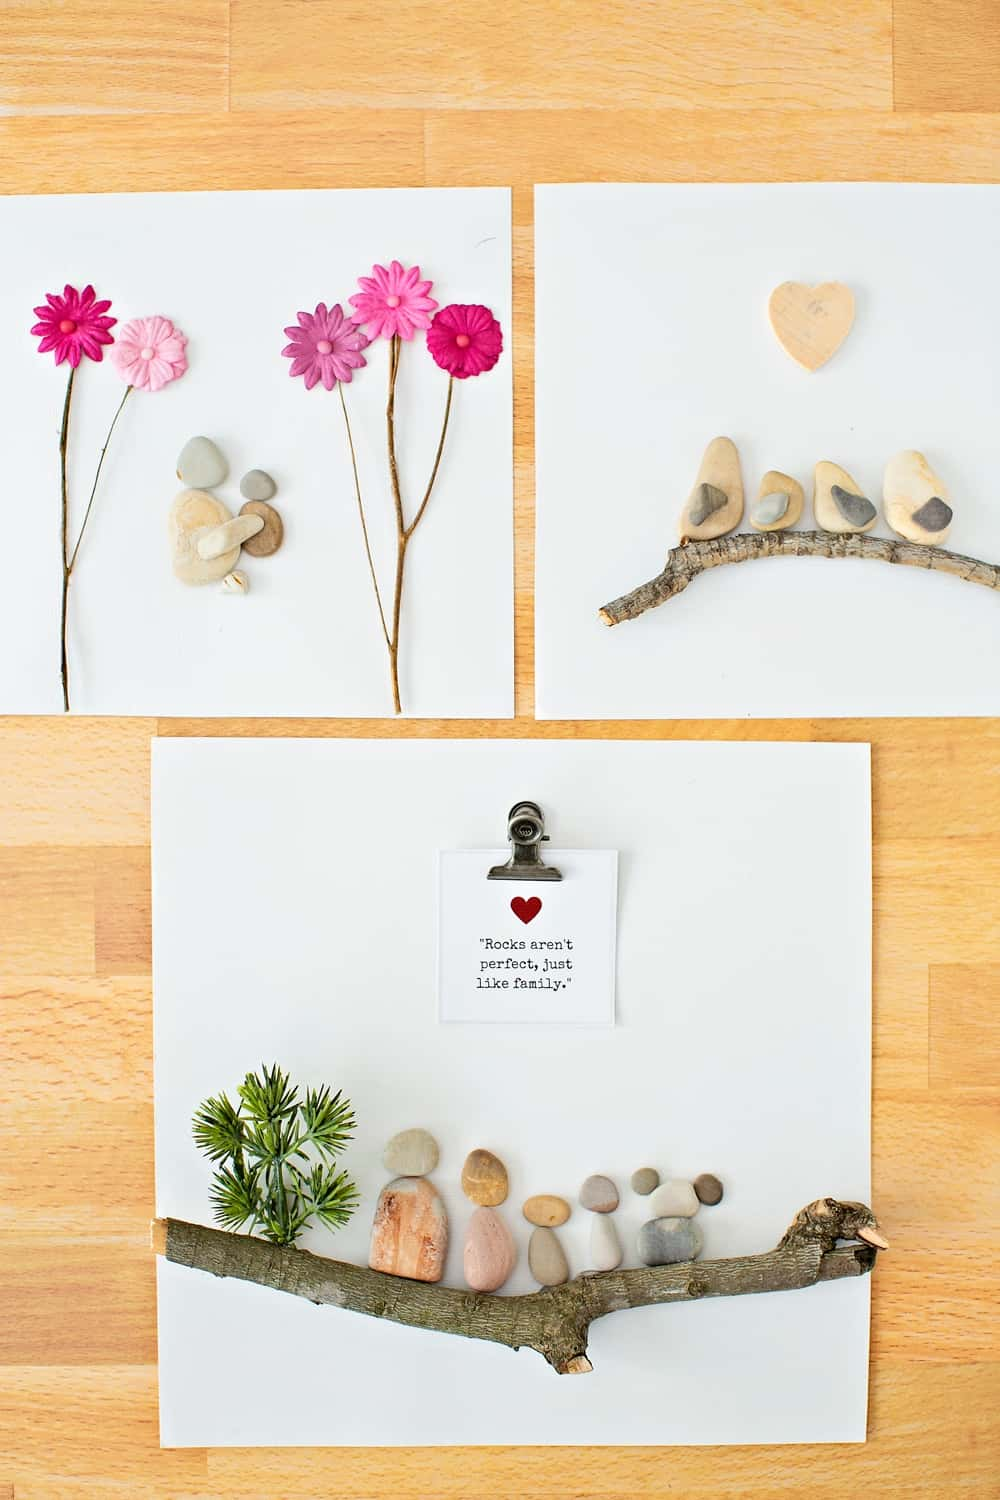 How to make pebble rock art